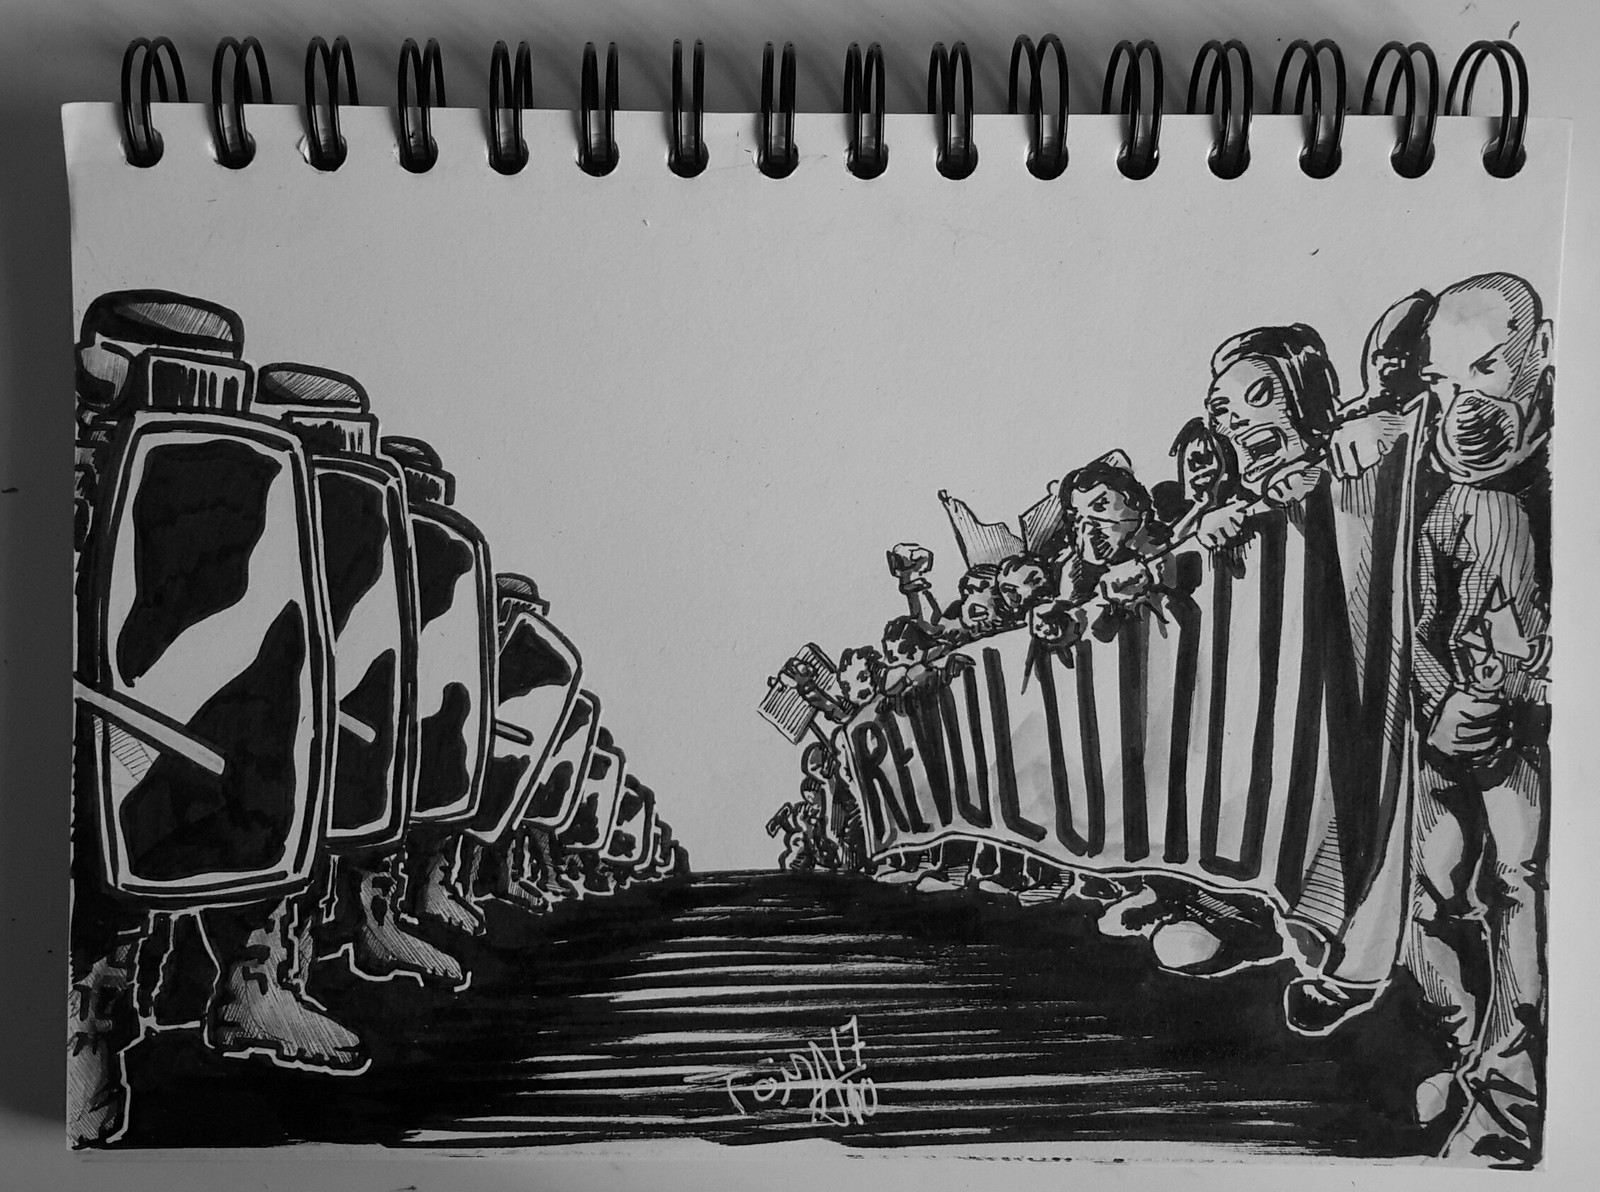 Day 2 : Divided